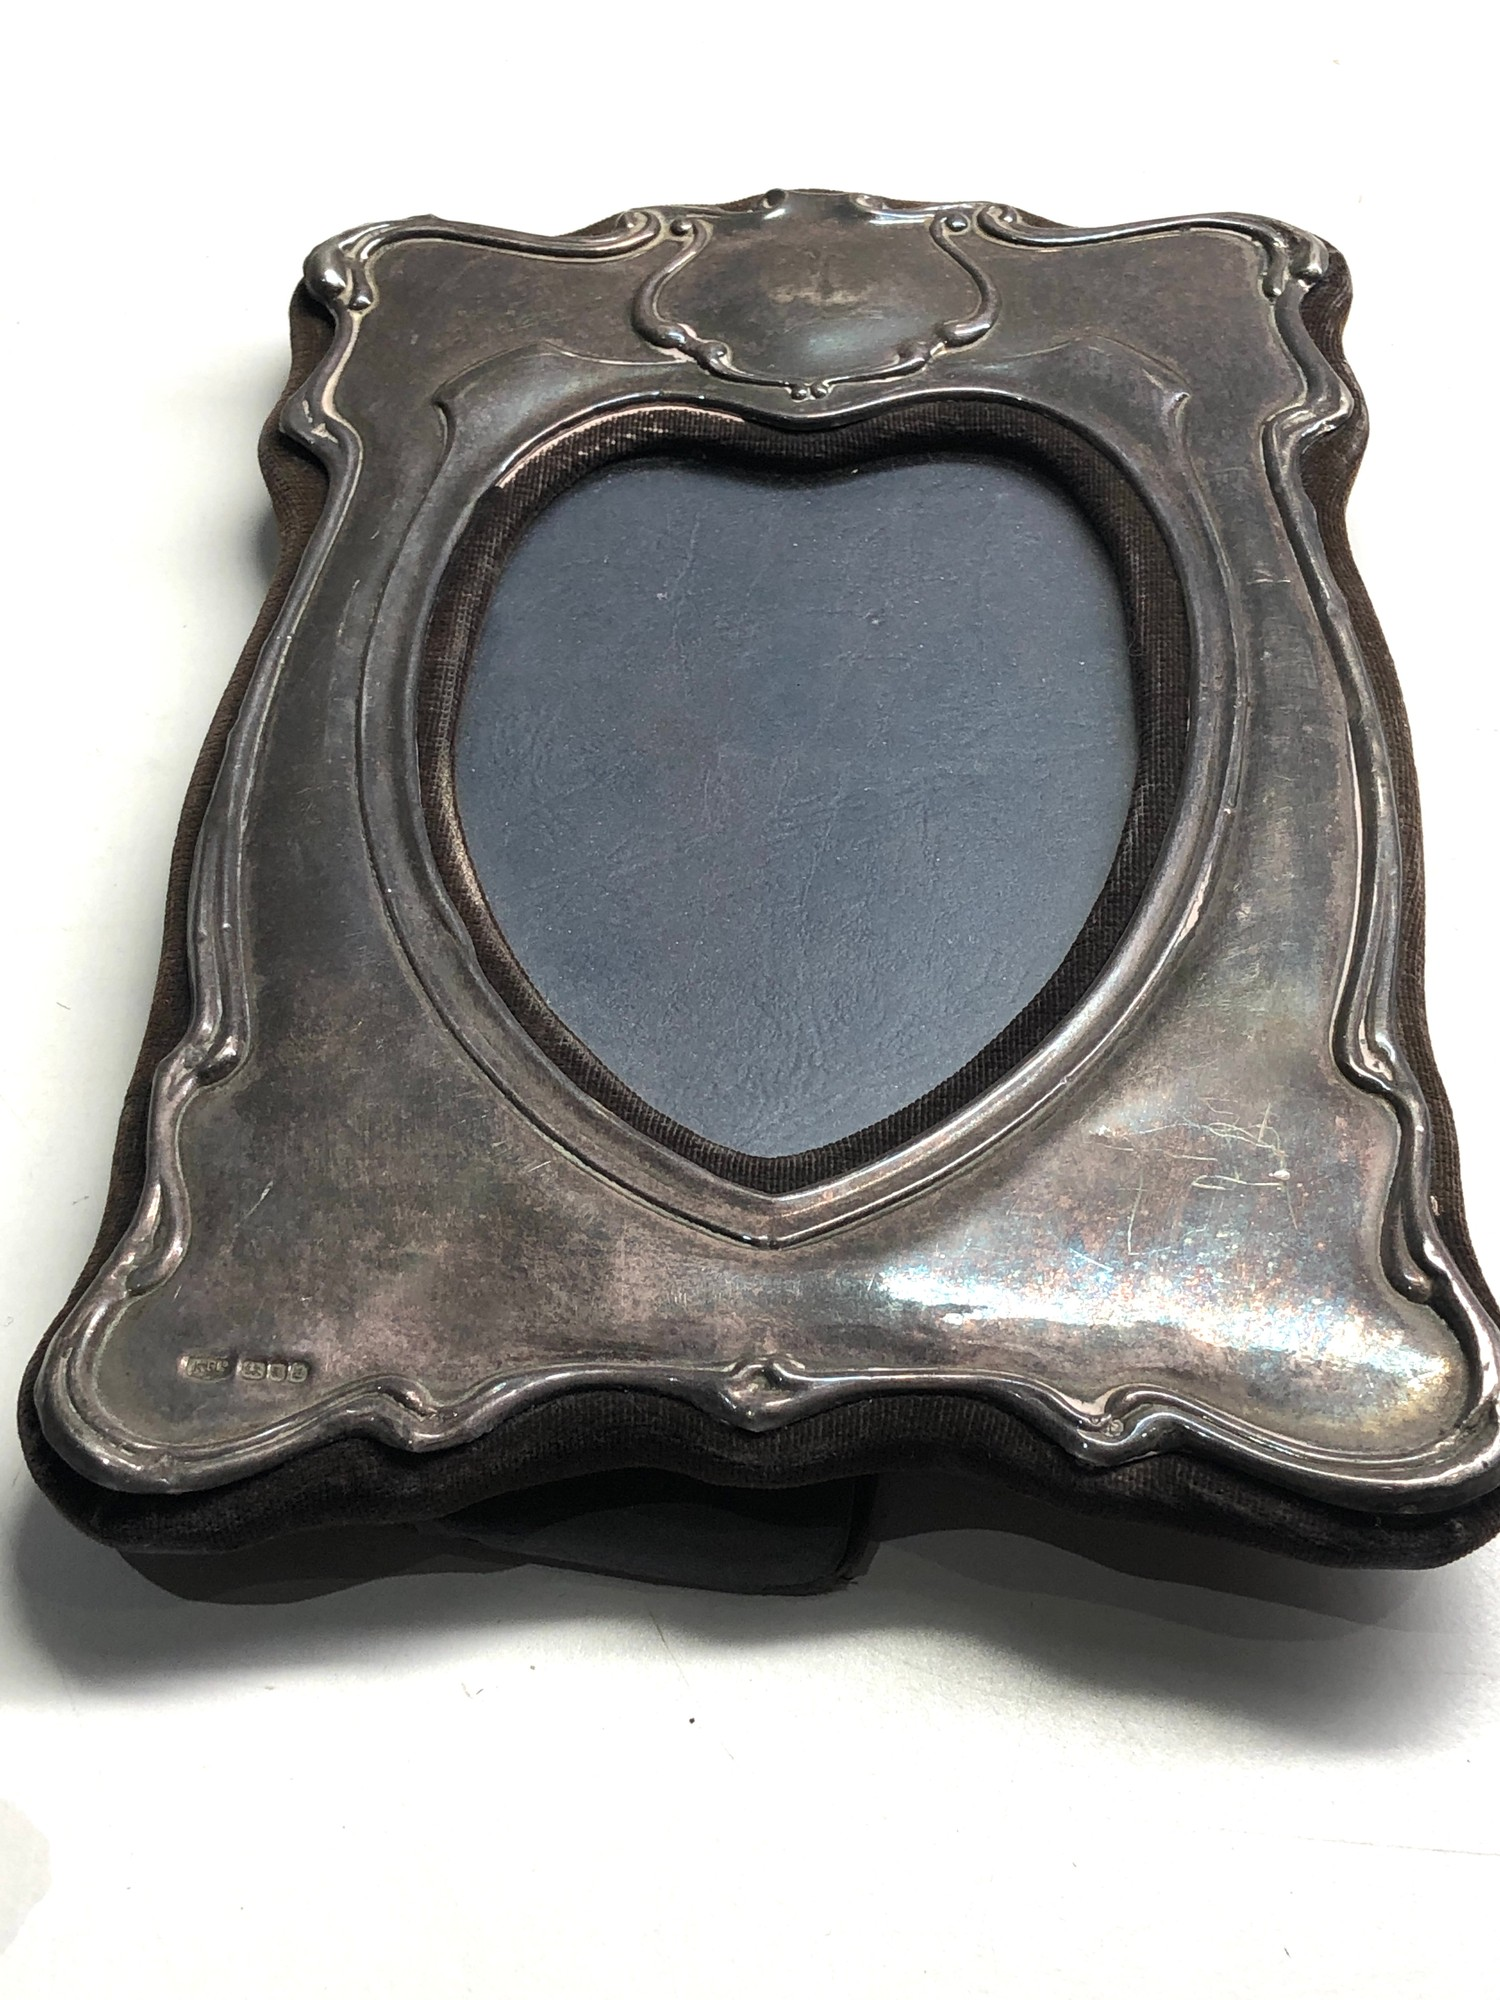 3 vintage silver picture frames largest measures approx 20cm by 14cm - Image 3 of 7